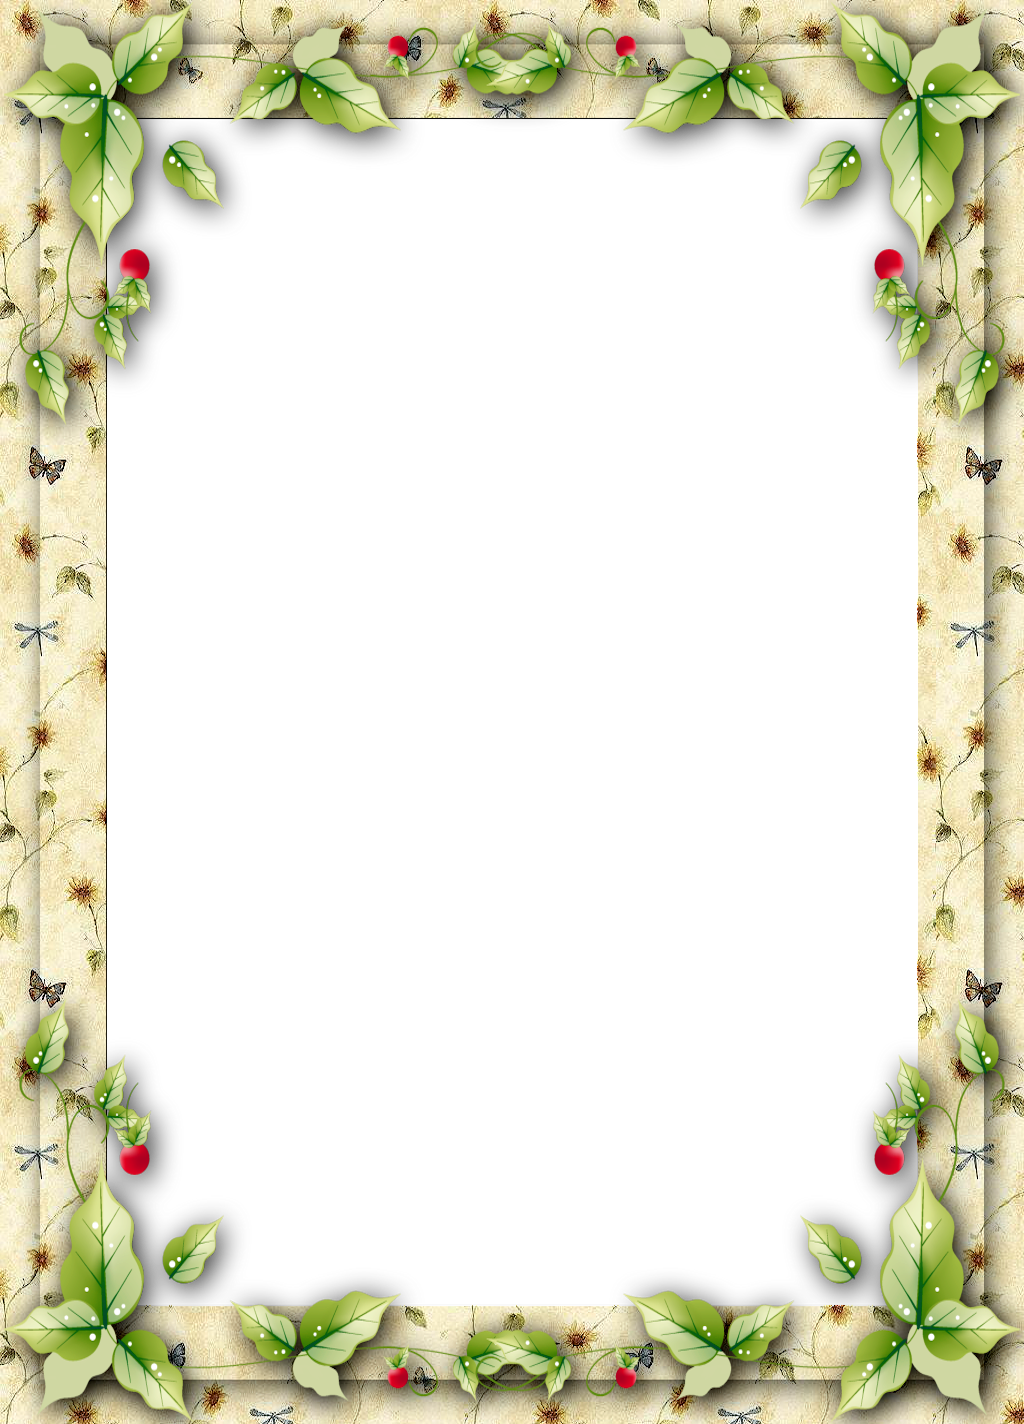 Free christmas clipart borders for word clipart freeuse download Christmas Frame with Mistletoe Leaves | Gallery Yopriceville - High ... clipart freeuse download